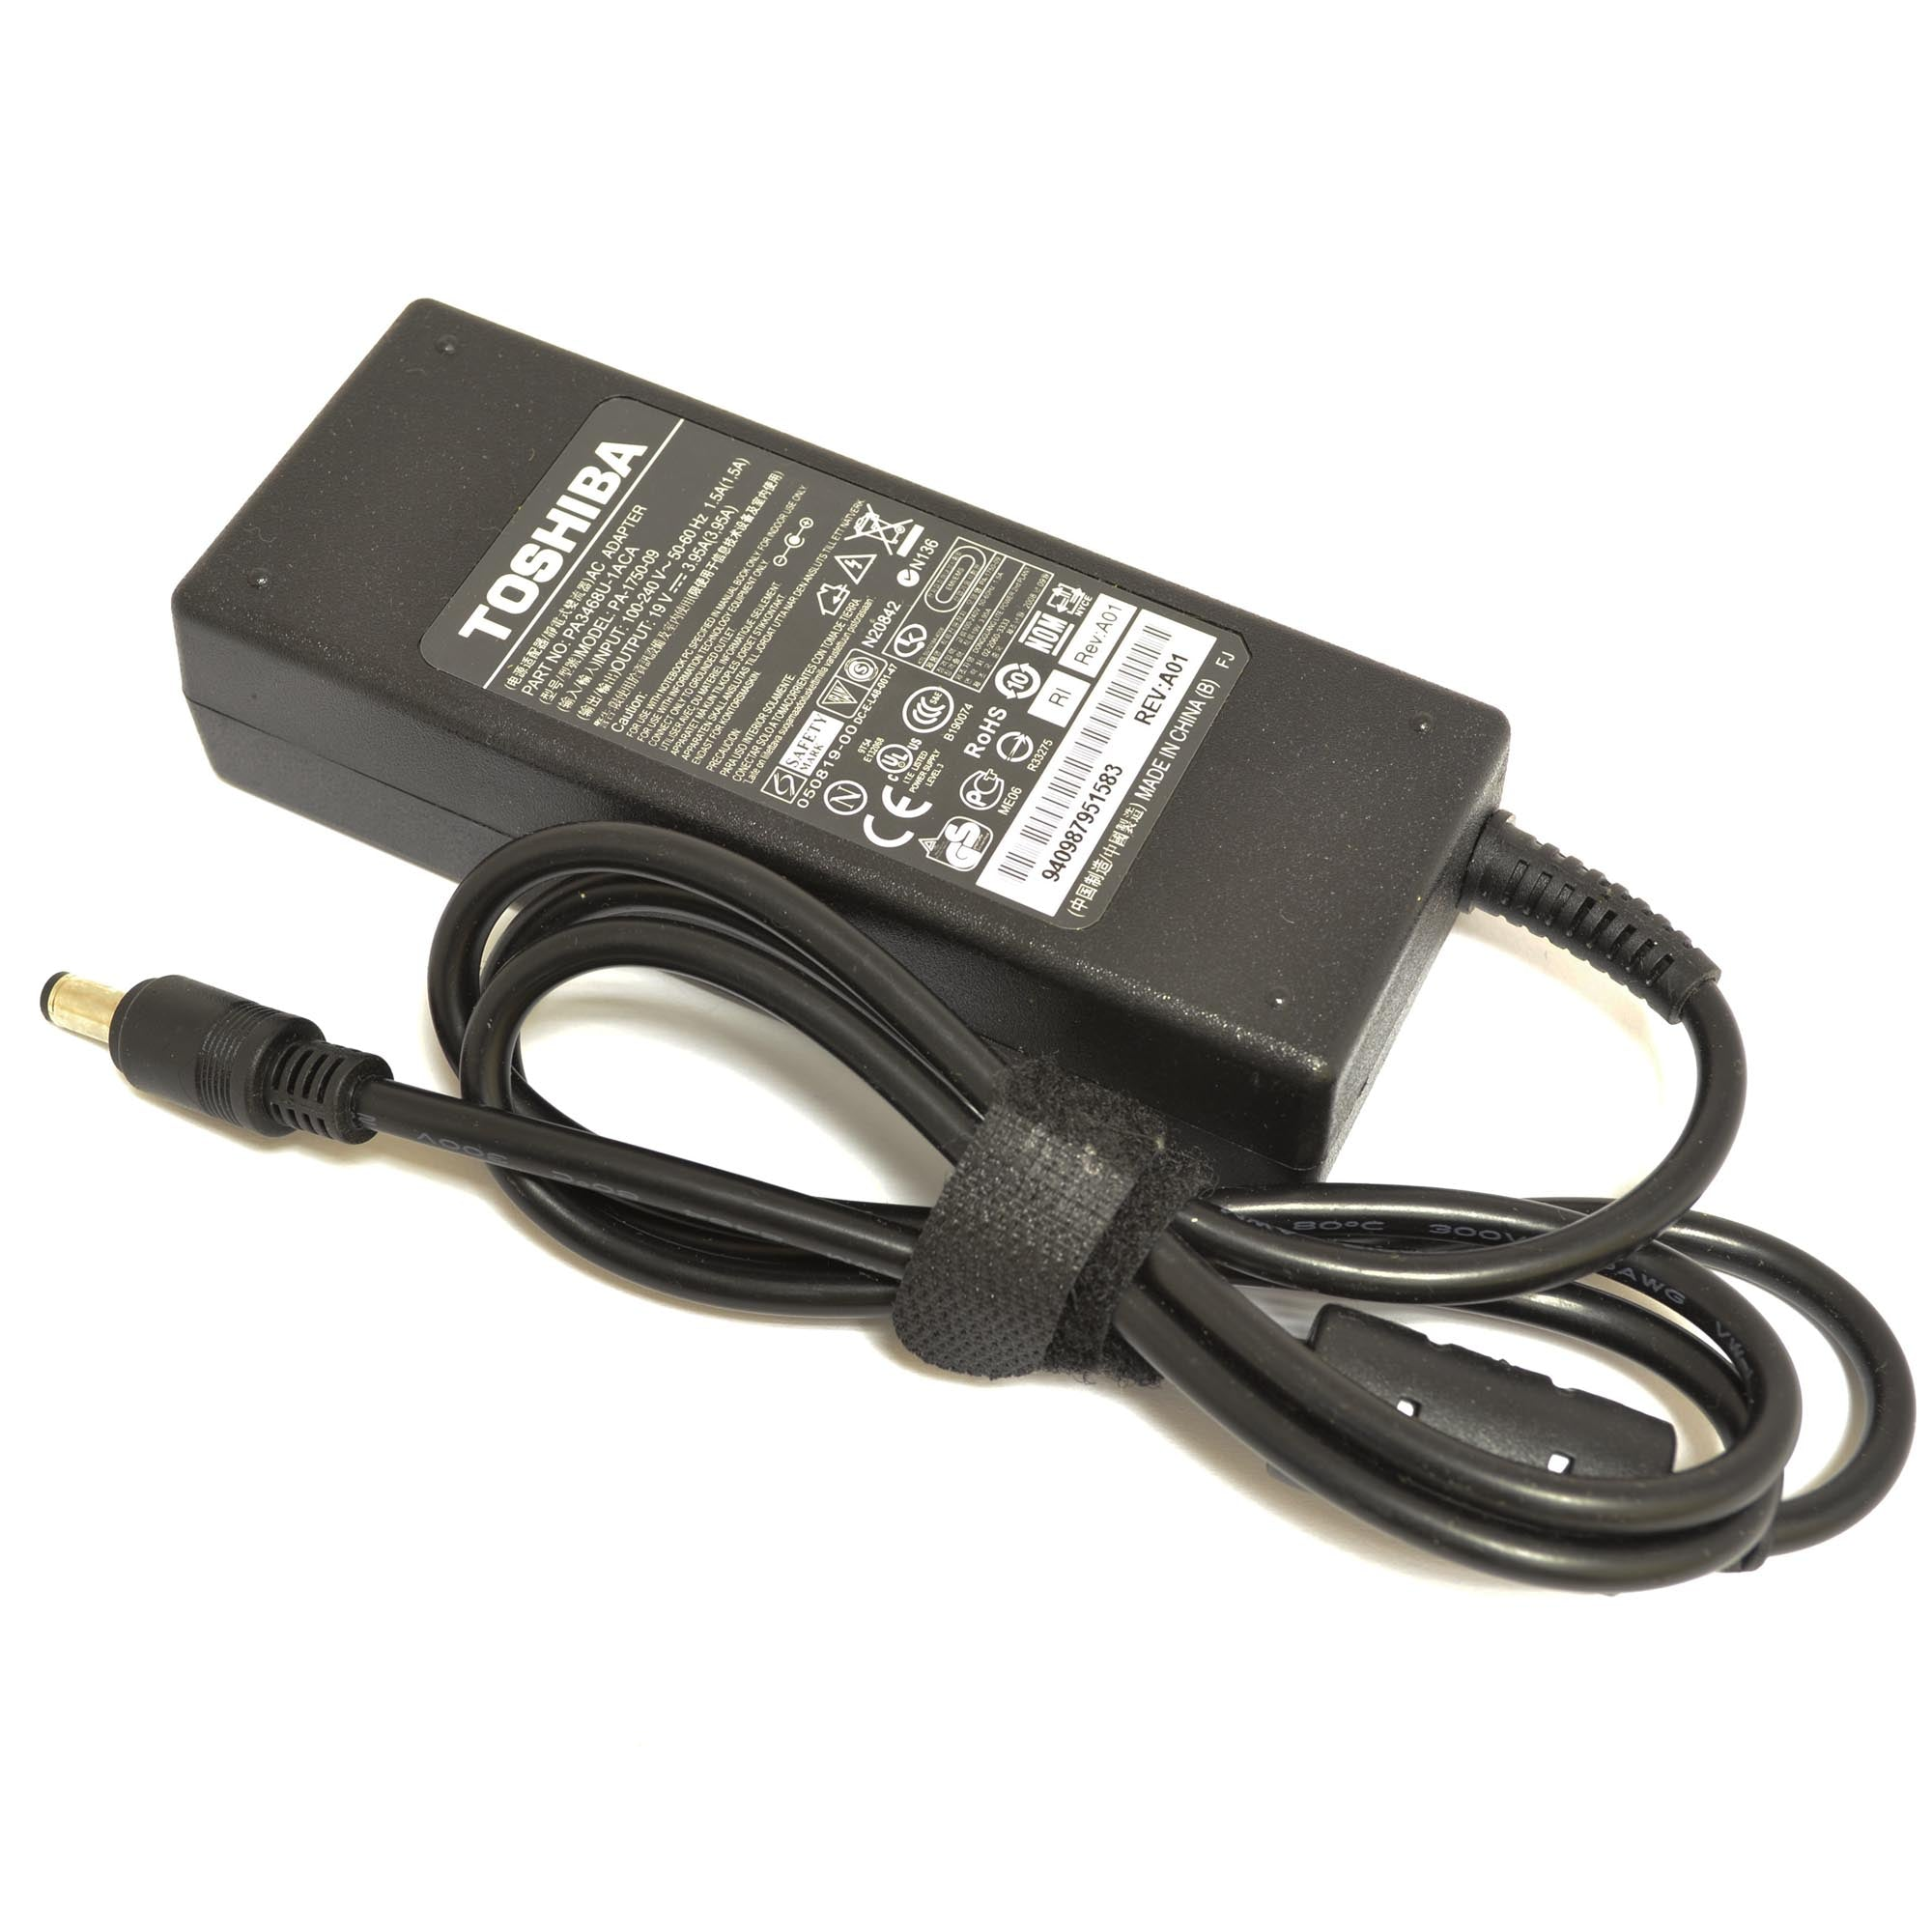 Toshiba 75W 19V 3.95A 5.5*2.5mm Replacement Laptop AC Adapter Charger